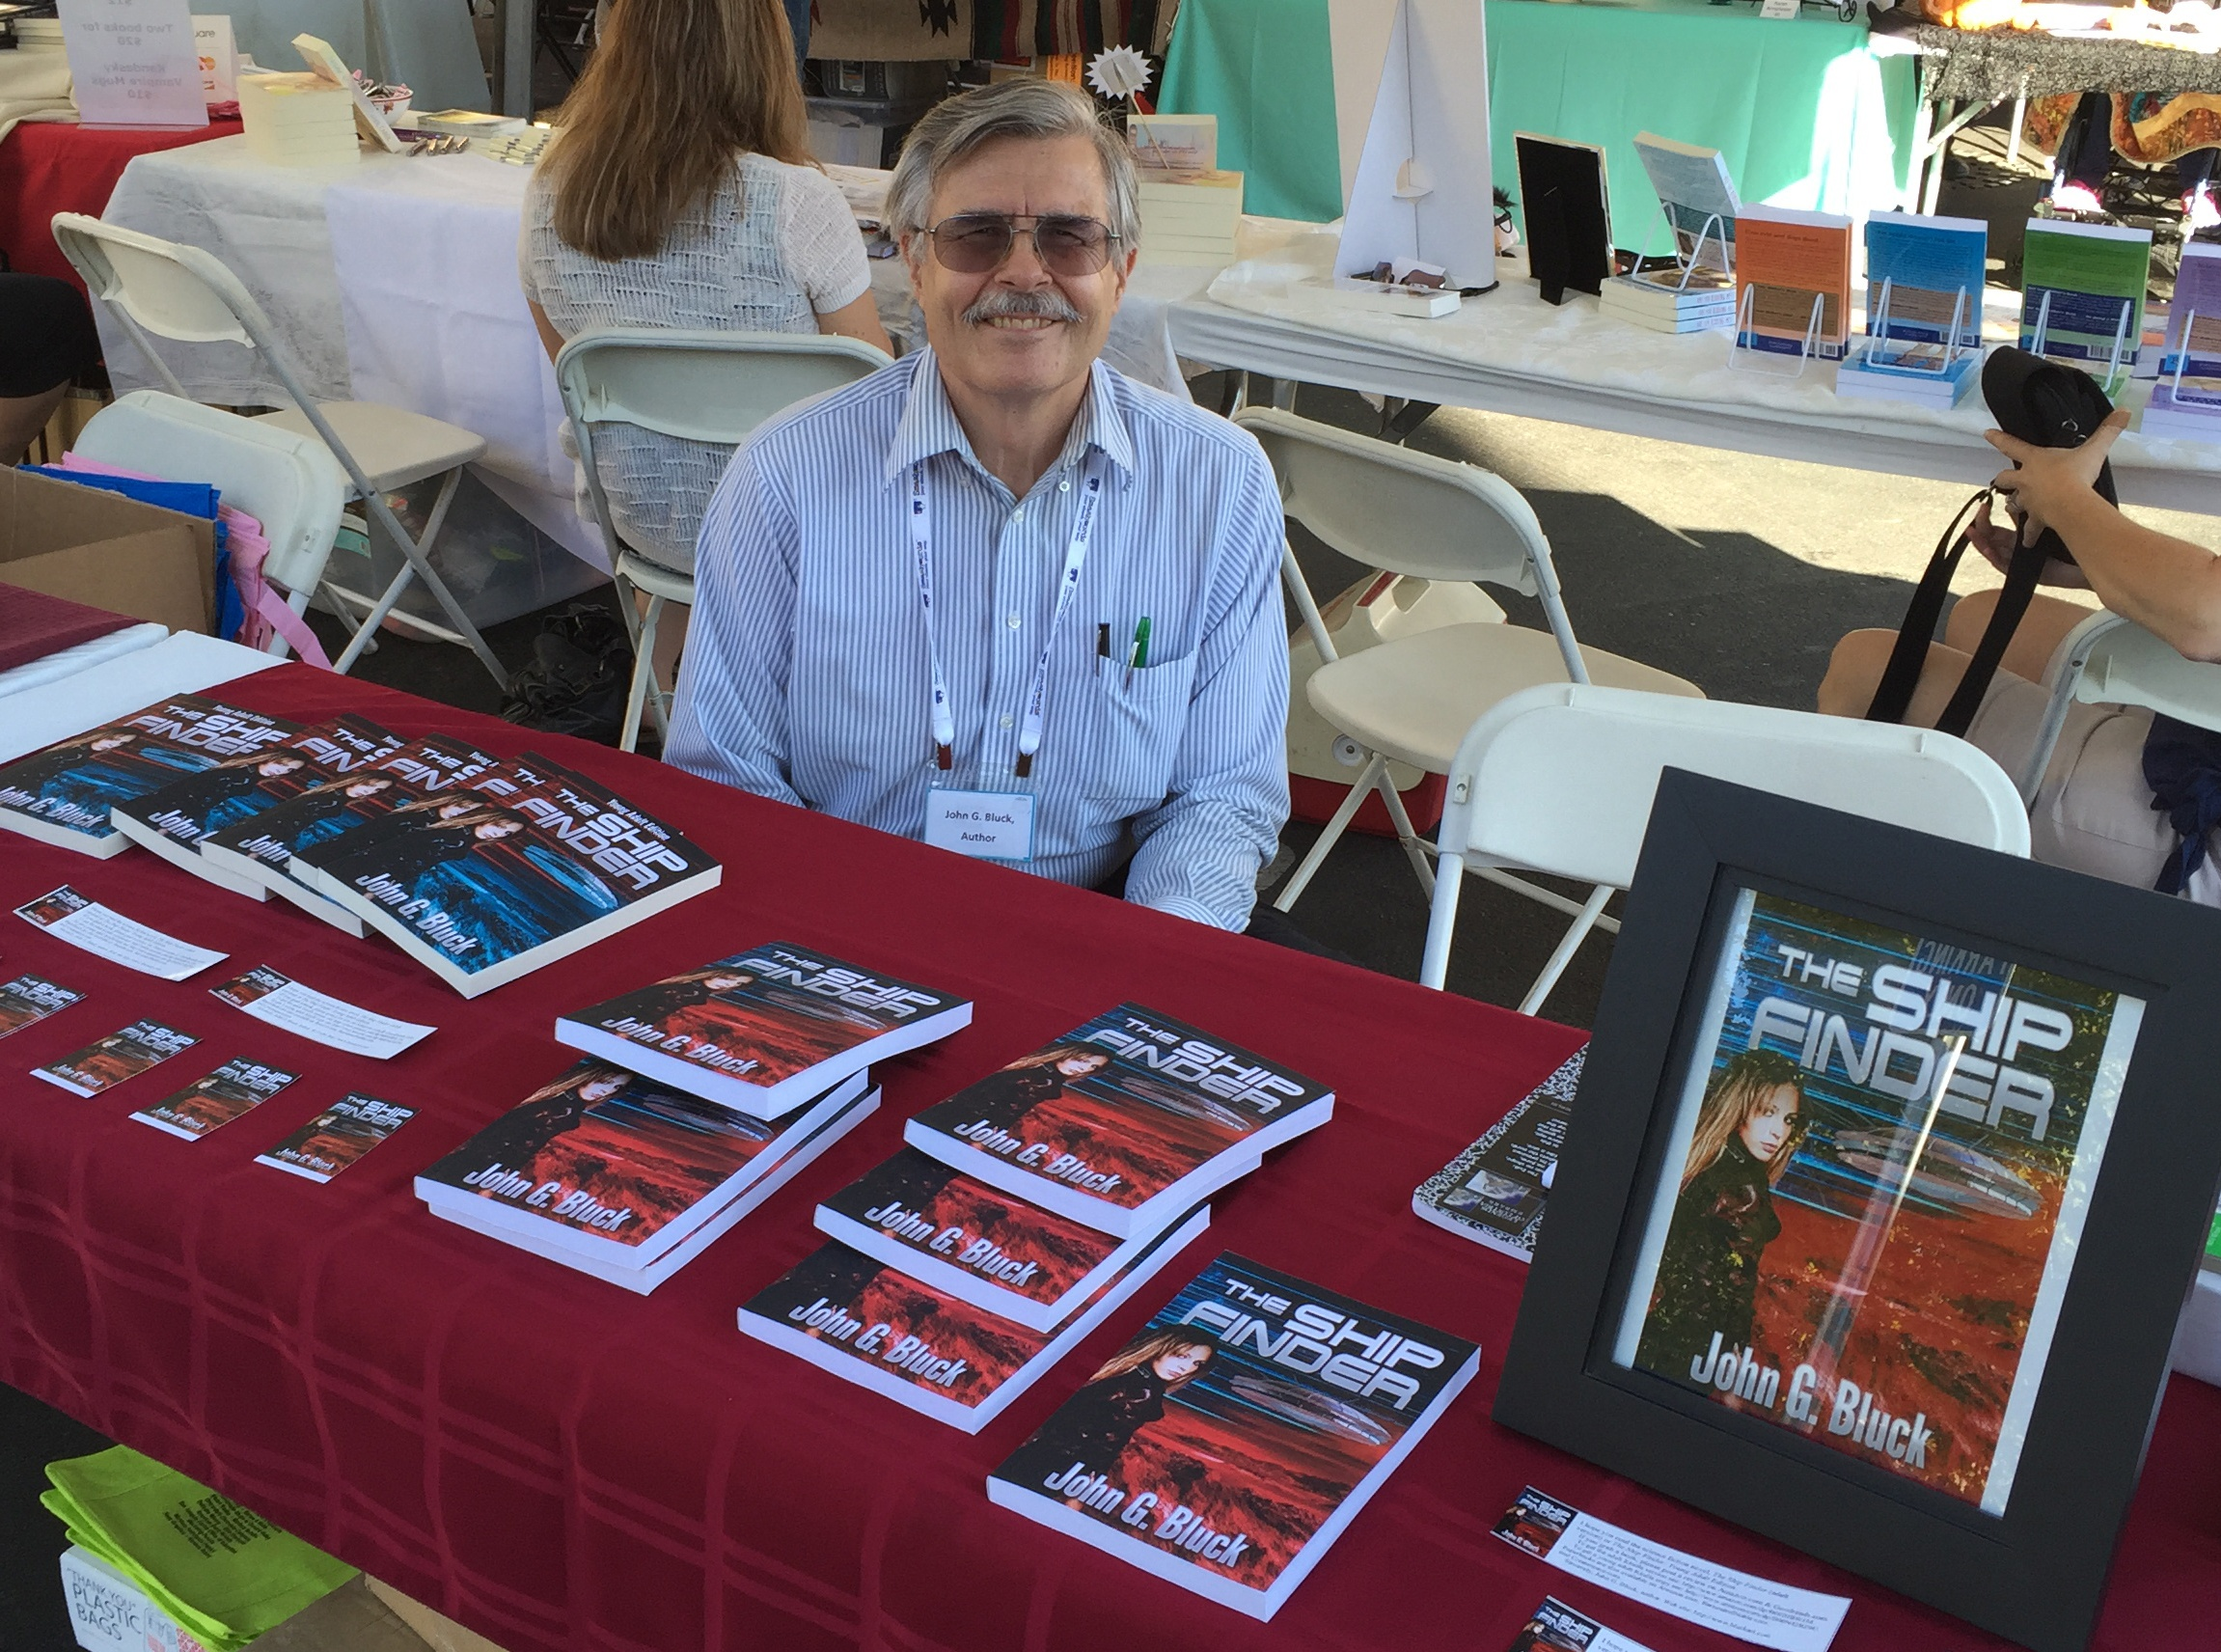 Author John G. Bluck at Manteca, Calif. Bookfest on Oct. 11, 2015.